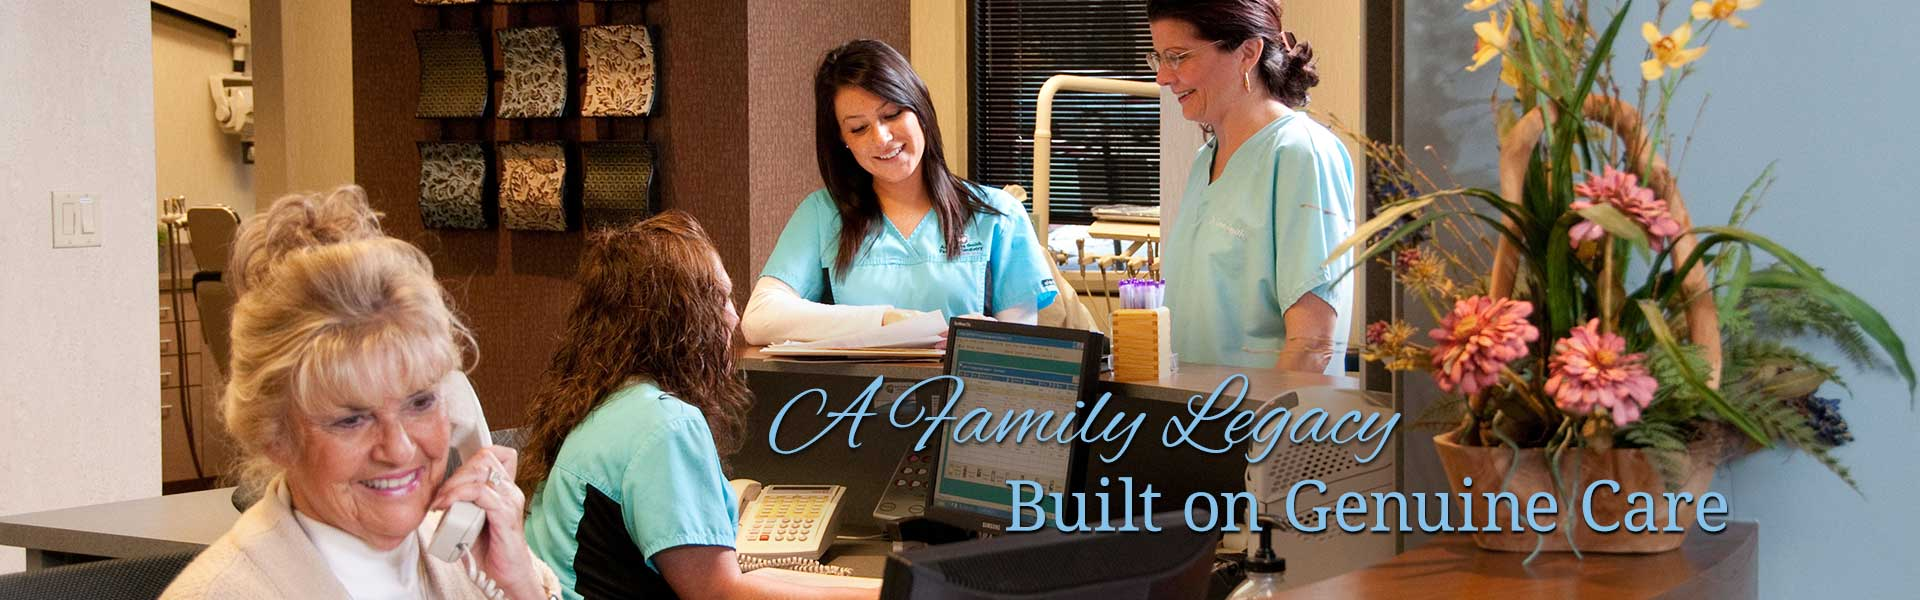 Slider Family Legacy Arlington Smith Family Dentistry Arlington Heights, IL